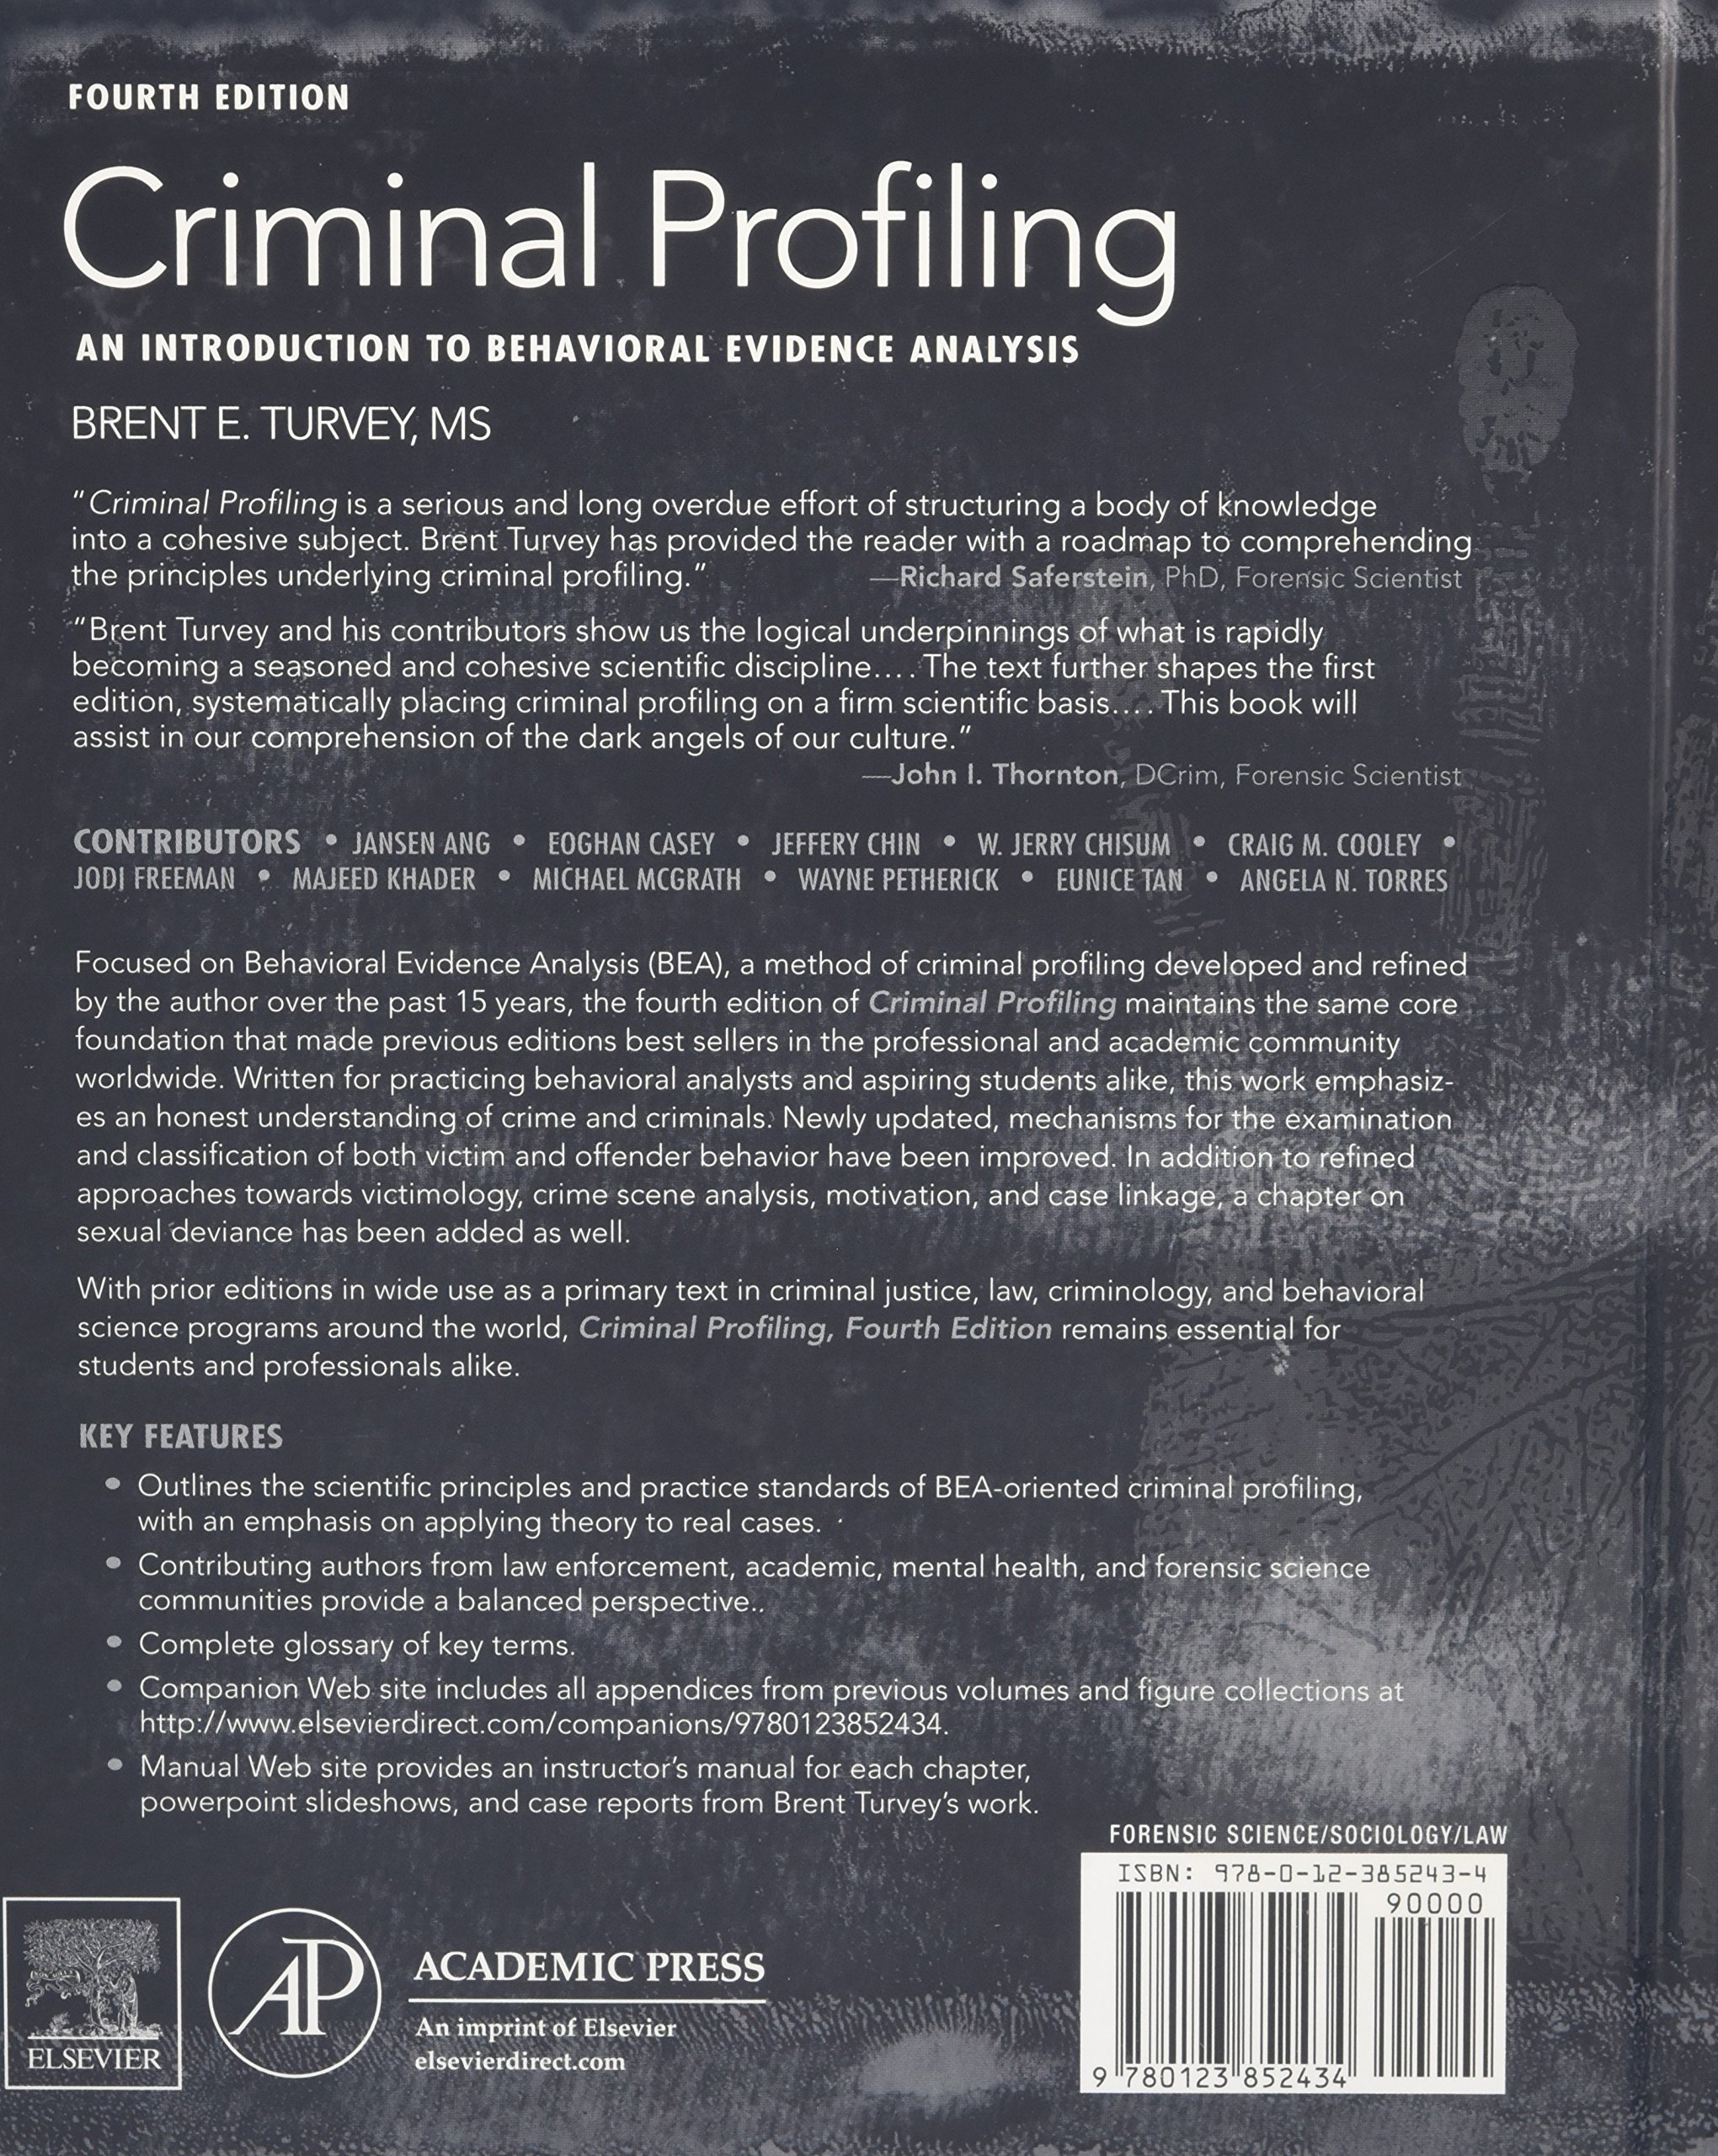 criminal profiling an introduction to behavioral evidence  criminal profiling an introduction to behavioral evidence analysis brent e turvey 9780123852434 biology